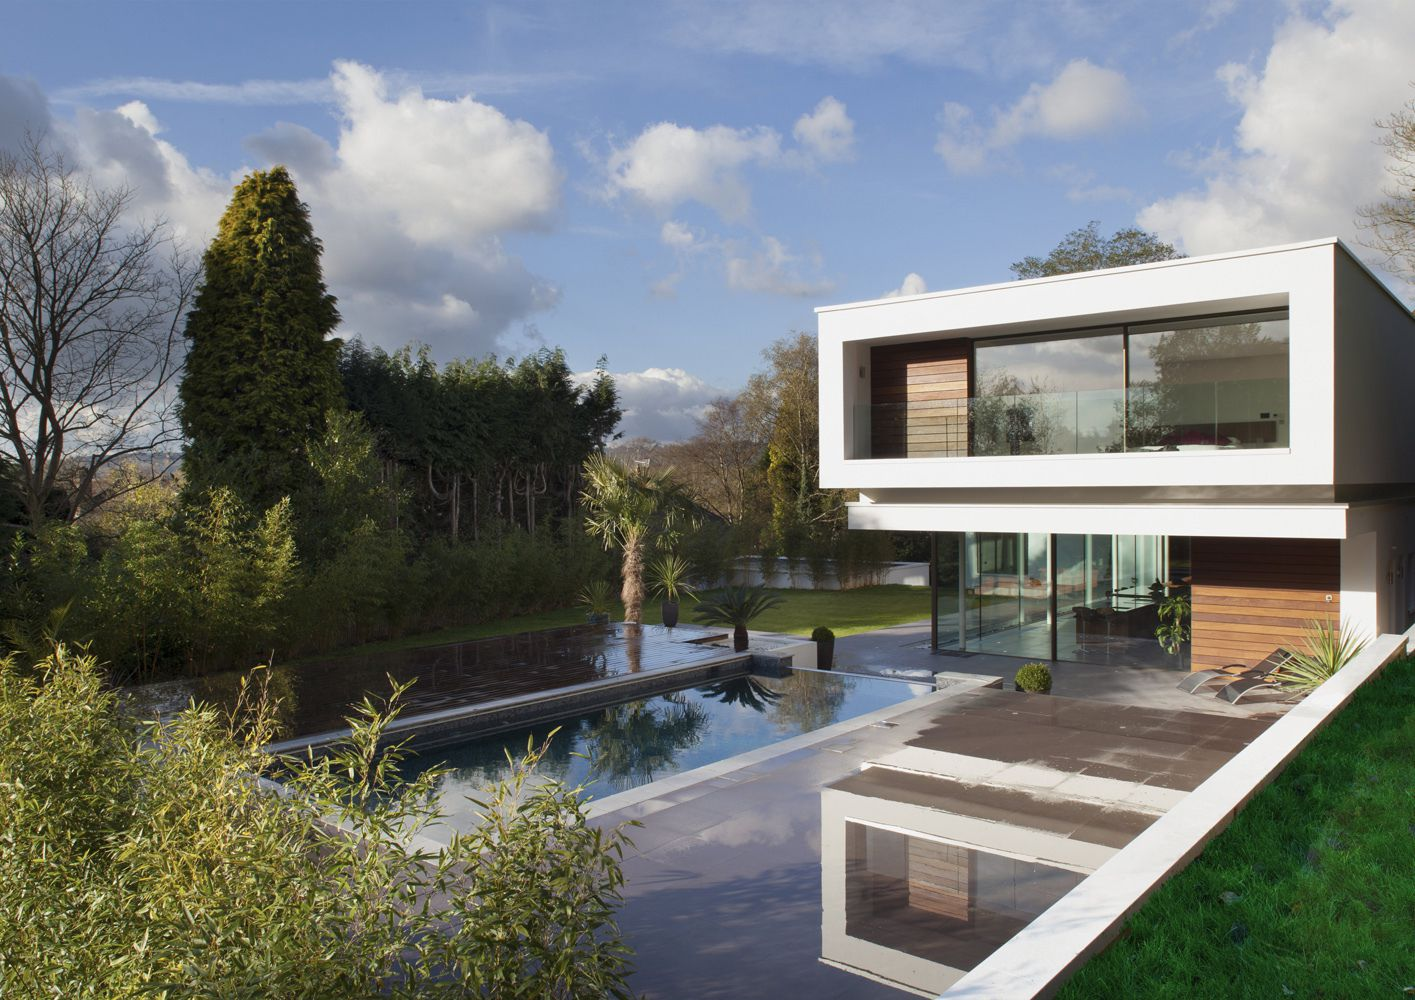 51b9e6efb3fc4bd12a000007_white-lodge-dyergrimes-architects_wl01logan